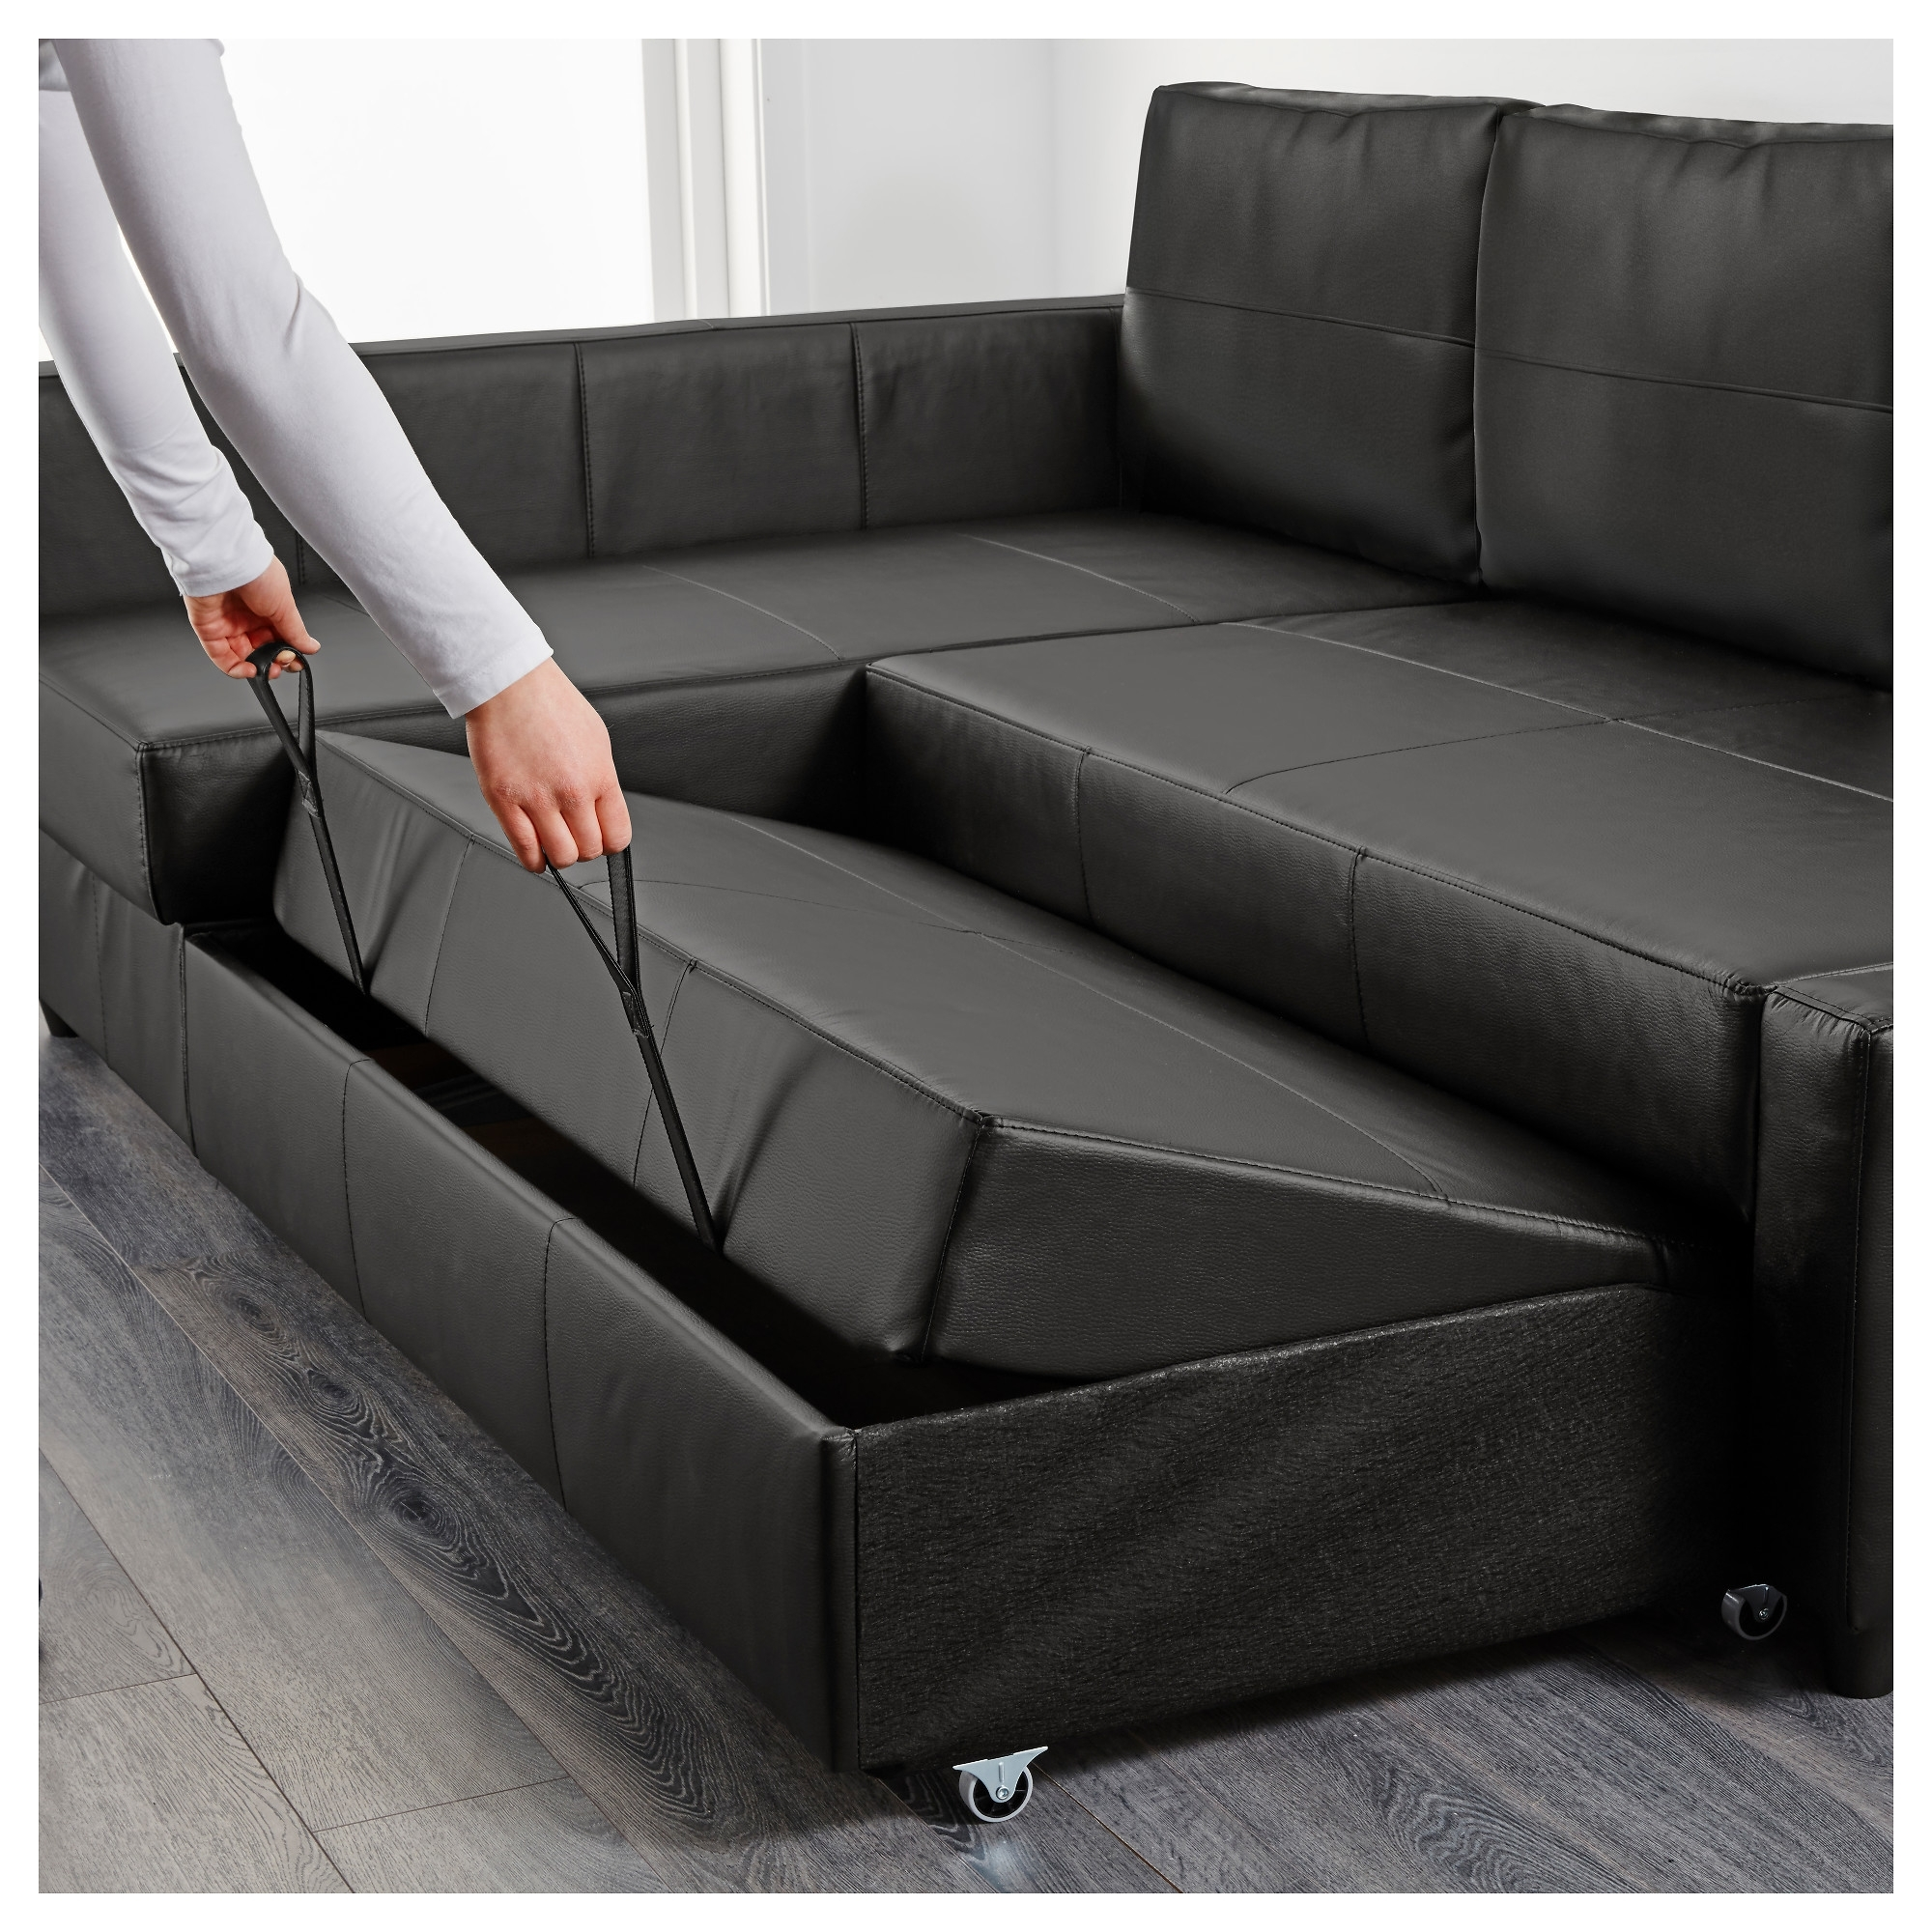 Friheten Corner Sofa Bed With Storage Bomstad Black – Ikea With Regard To Ikea Corner Sofas With Storage (View 3 of 10)